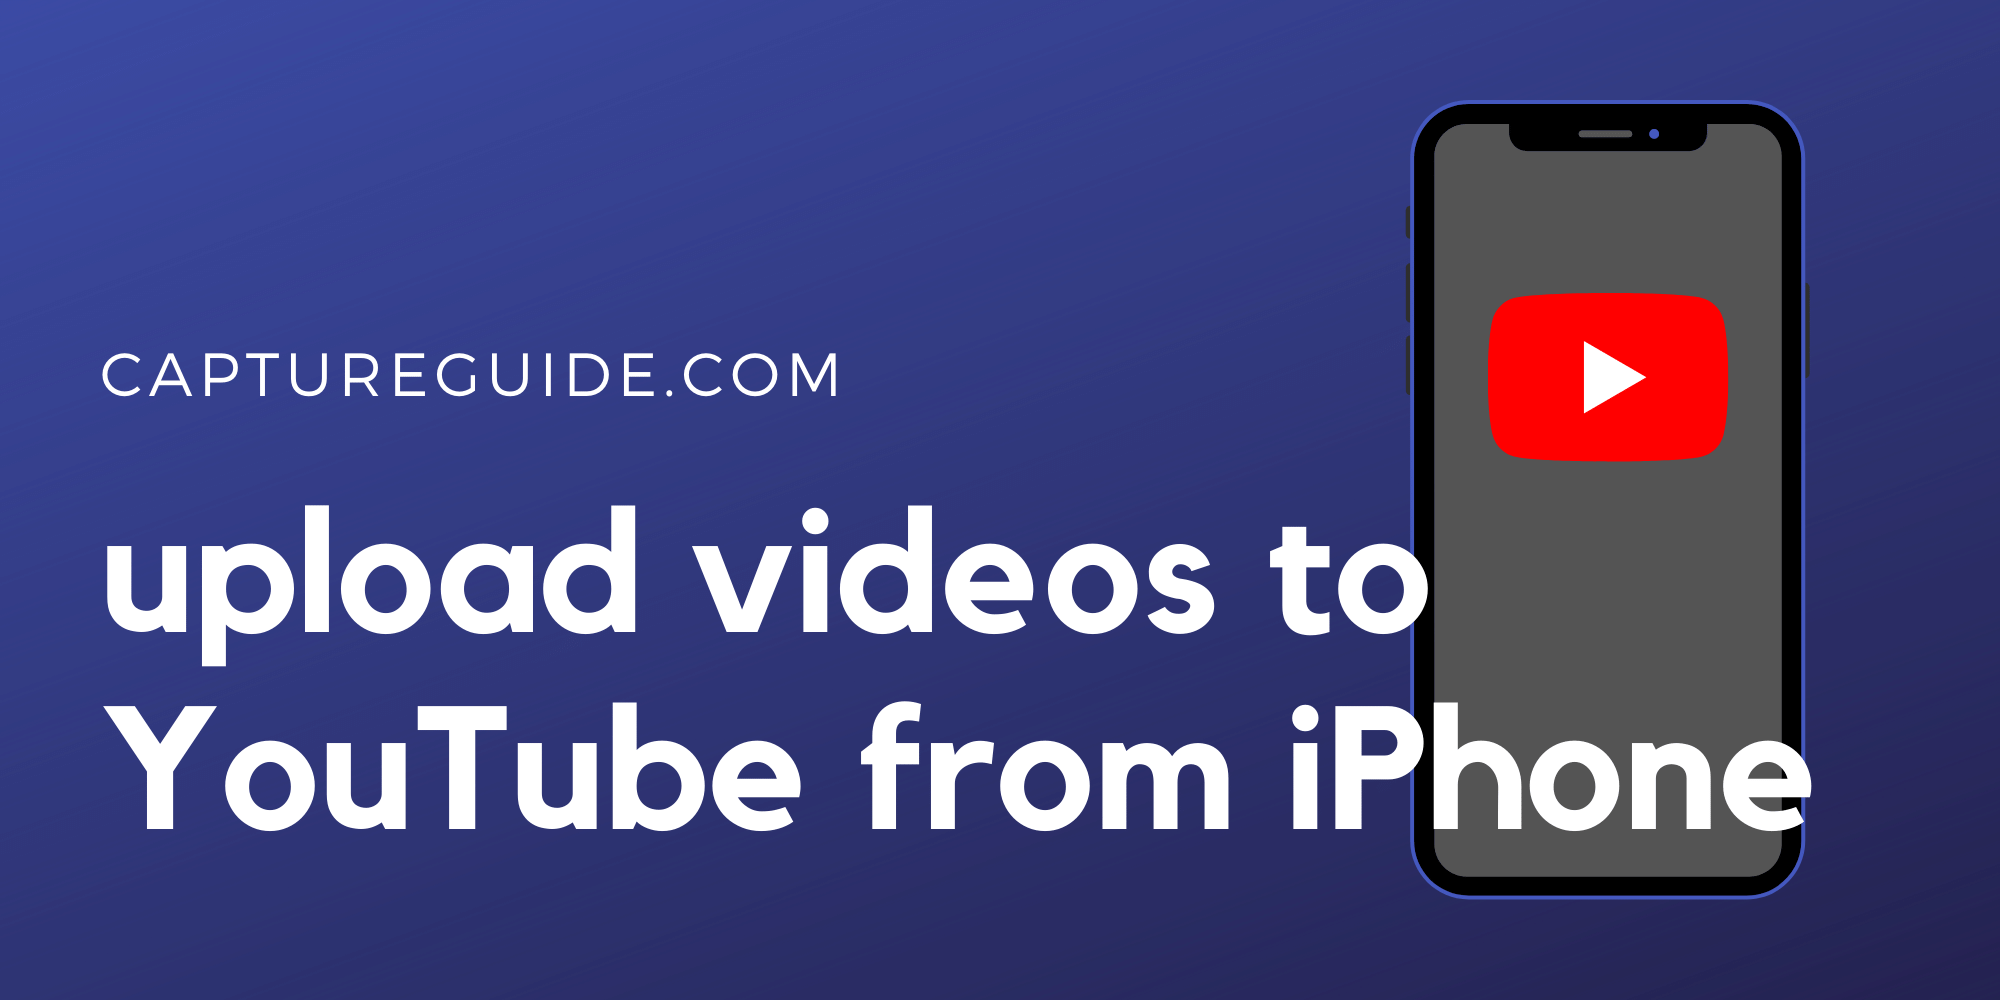 featured image for how to upload videos to youtube from iphone tutorial